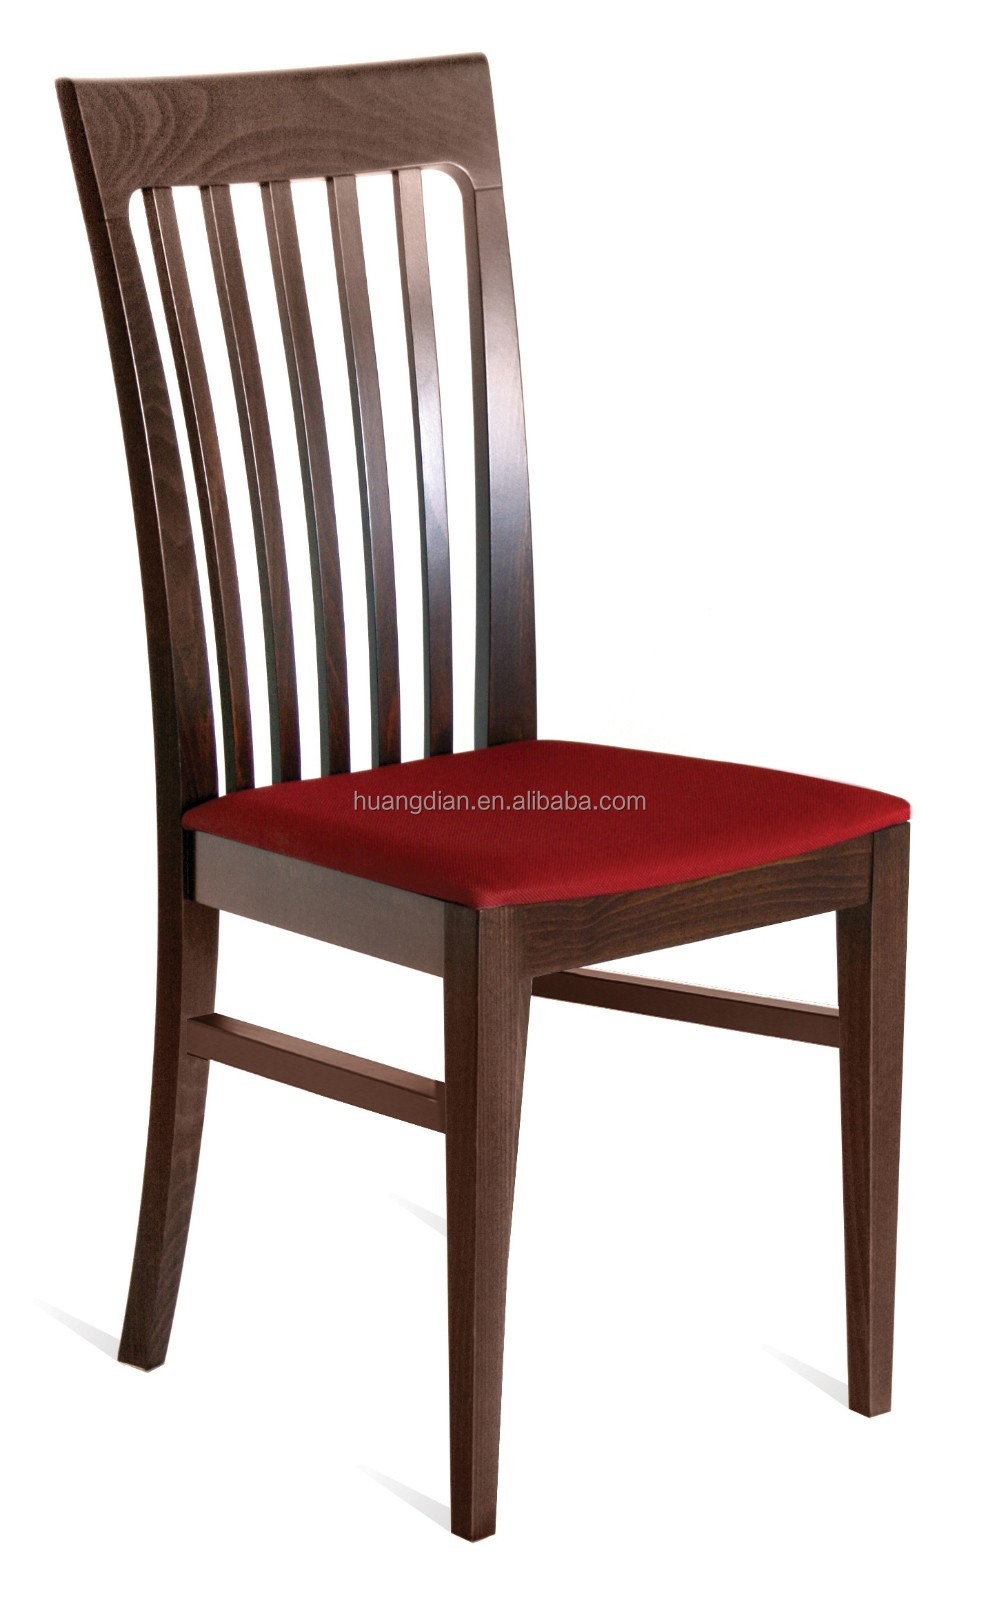 Wooden restaurant chairs wholesale houston cafe